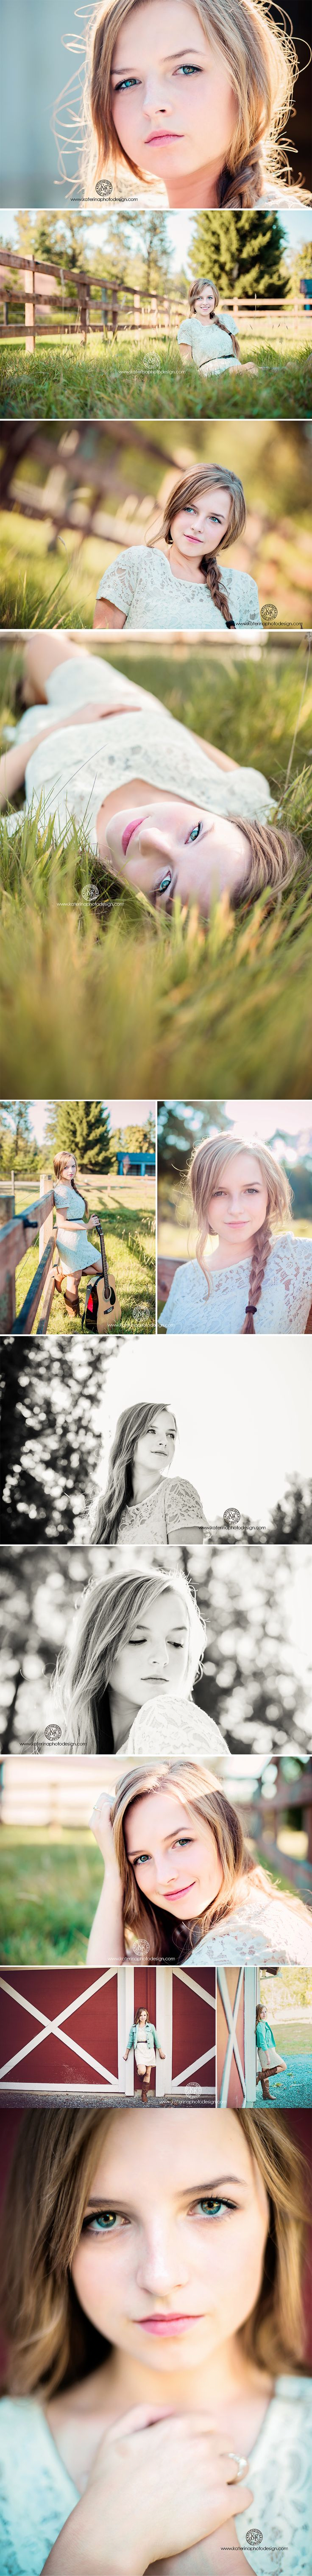 one day i wish, i dream, i inspire to shoot seniors in this way. absolutely beautiful. one day, mandylenore. one day. :)     Country Senior Photo Sеssion with Inna || Seattle Senior Photographer » Katerina Fortygin Photography and Design